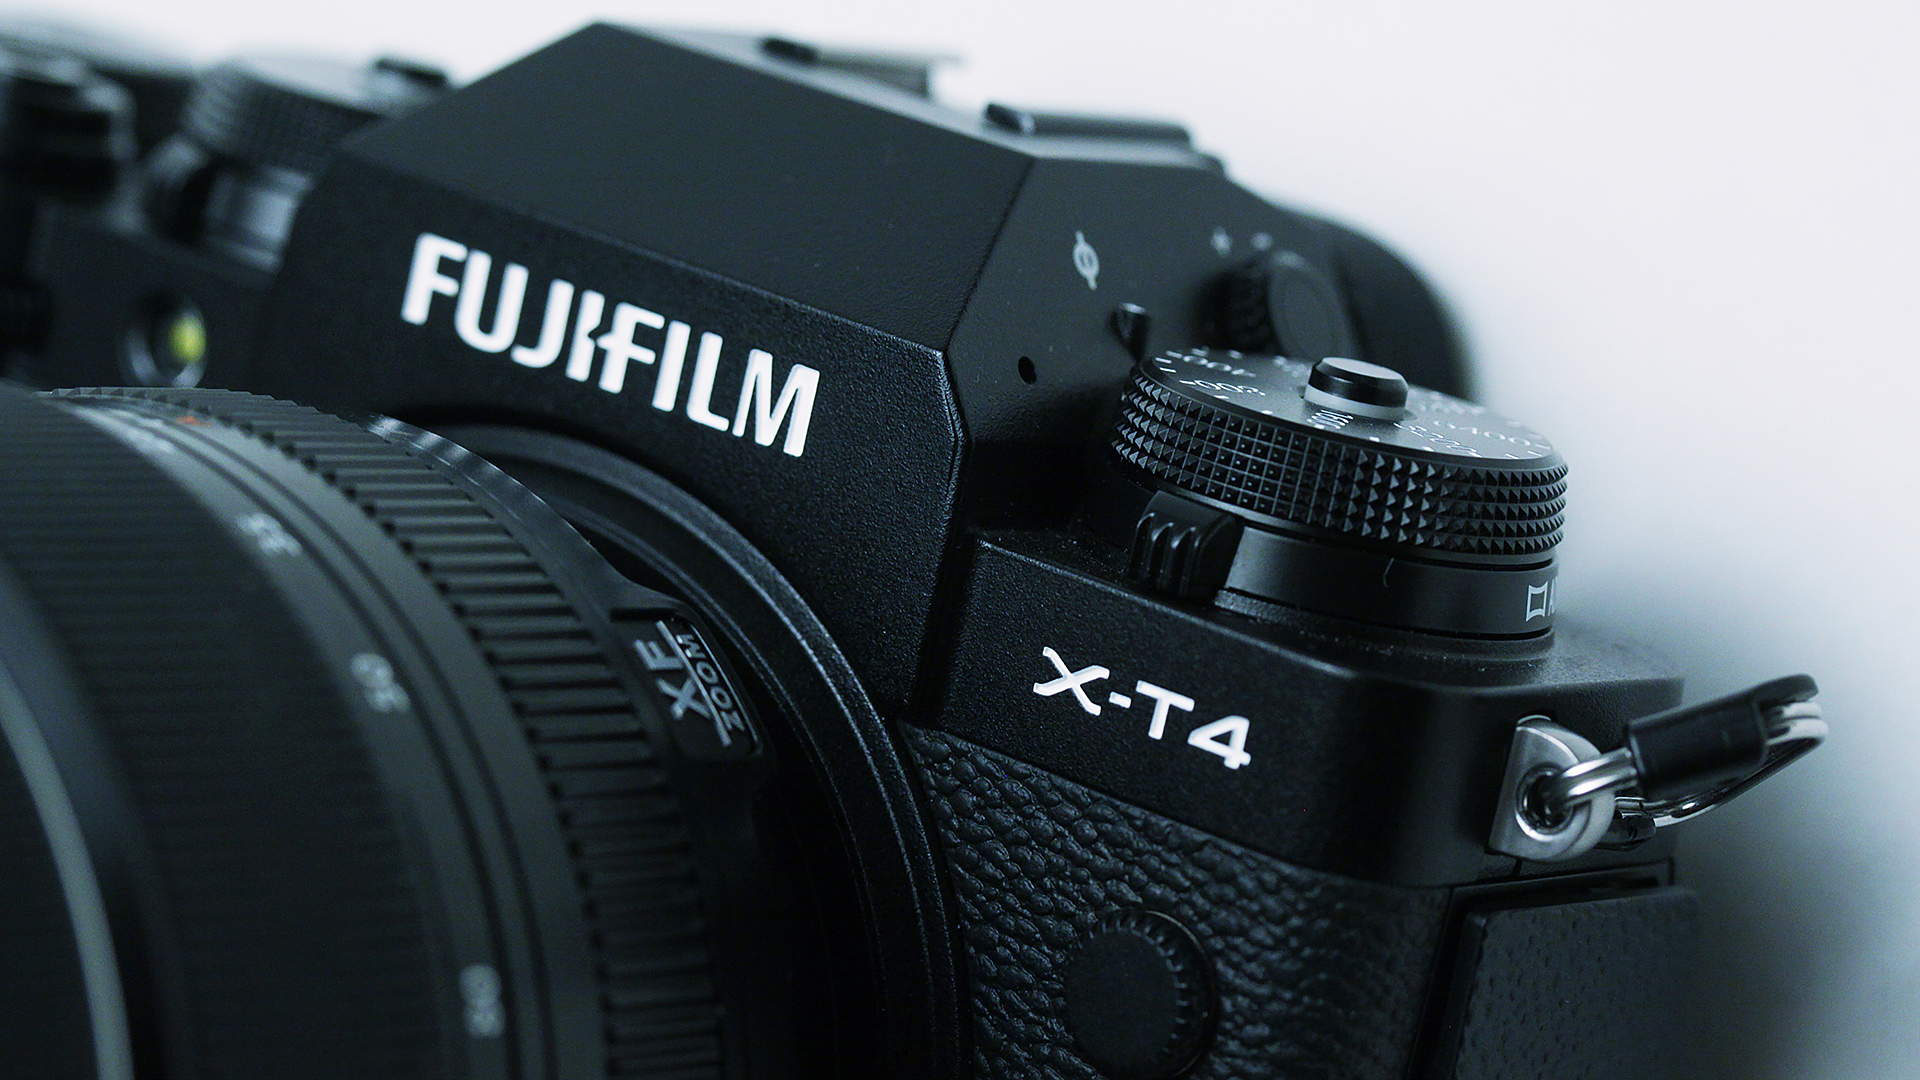 The Fujifilm X-T4 review